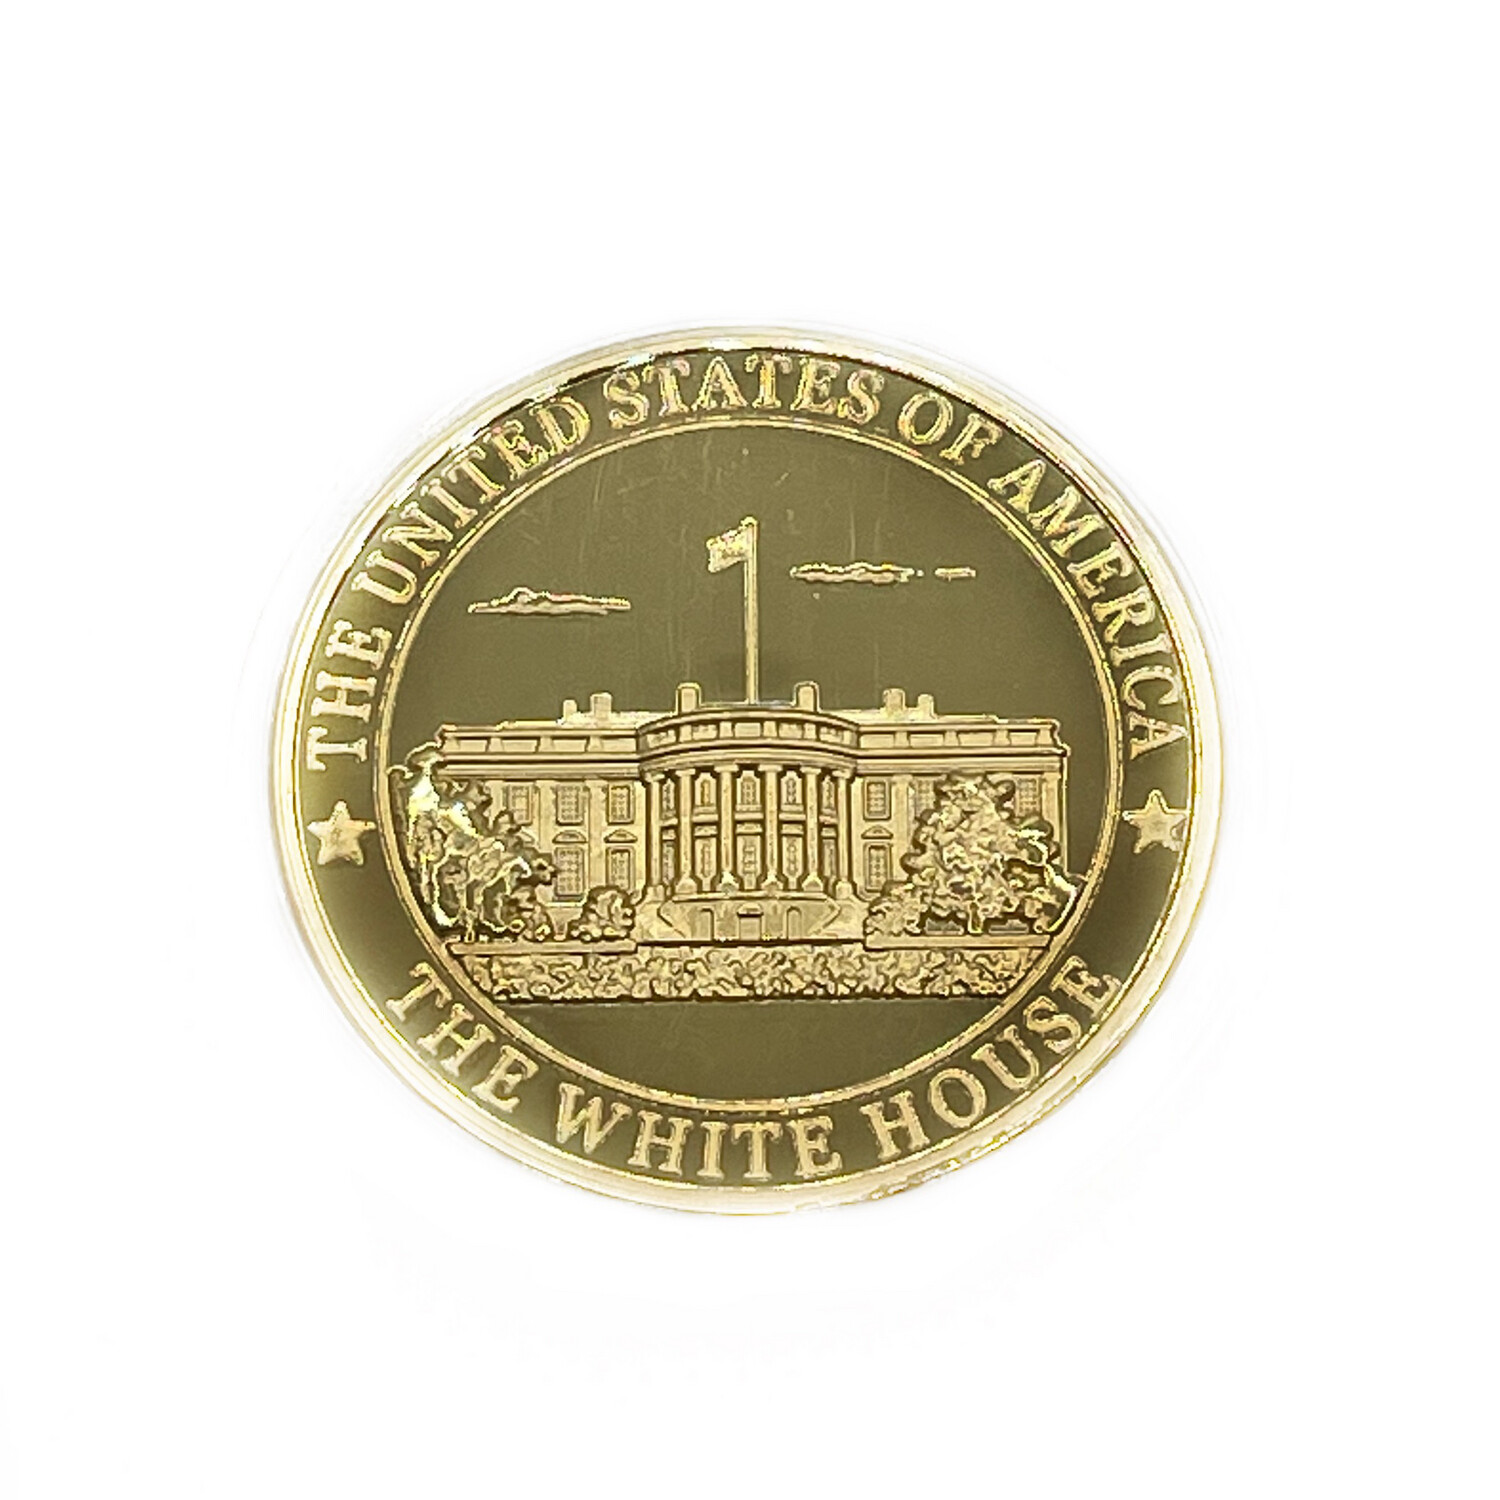 White House Coin - Gold